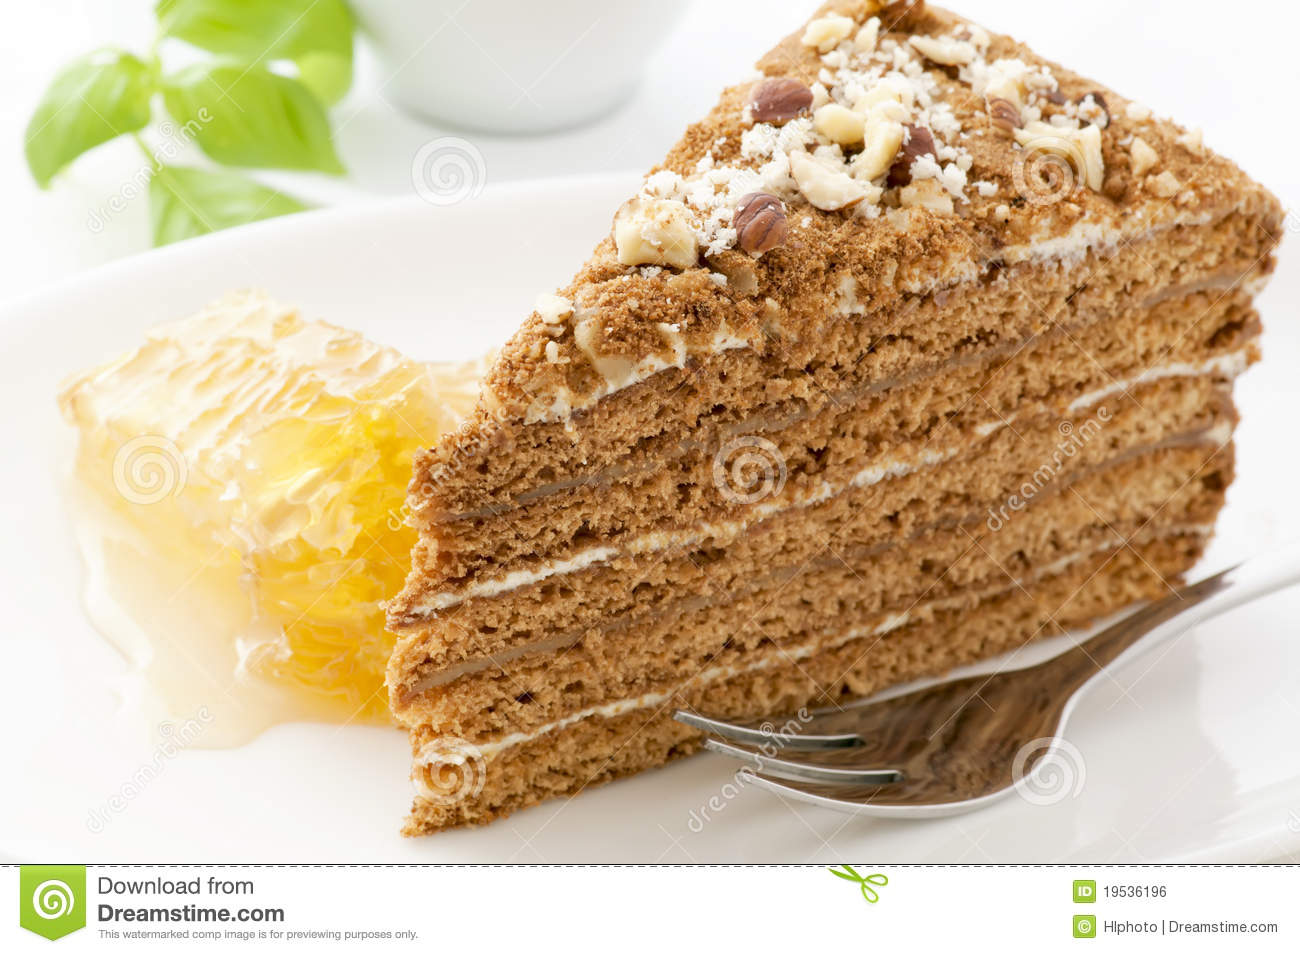 Clipart Of Honey Cake : Honey Cake Royalty Free Stock Image - Image: 19536196